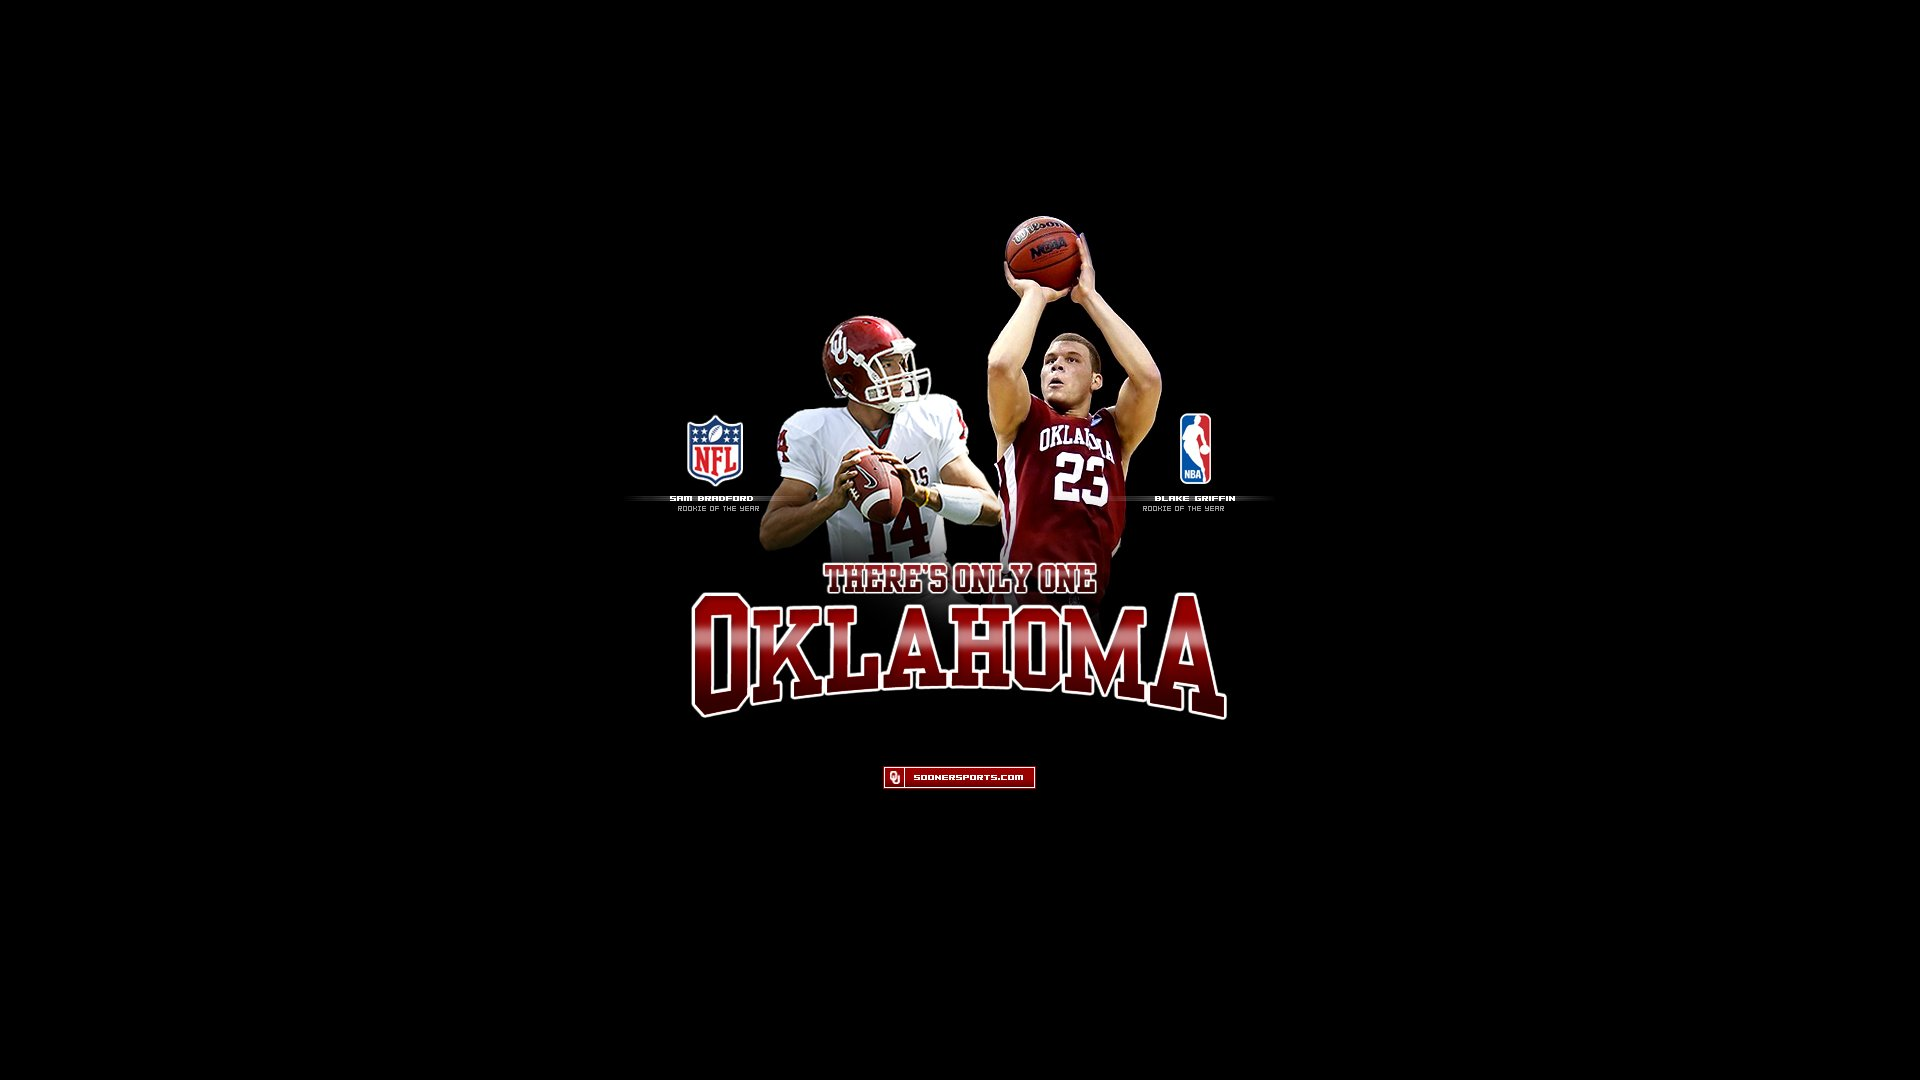 oklahoma sooners wallpaper HD 1920x1080